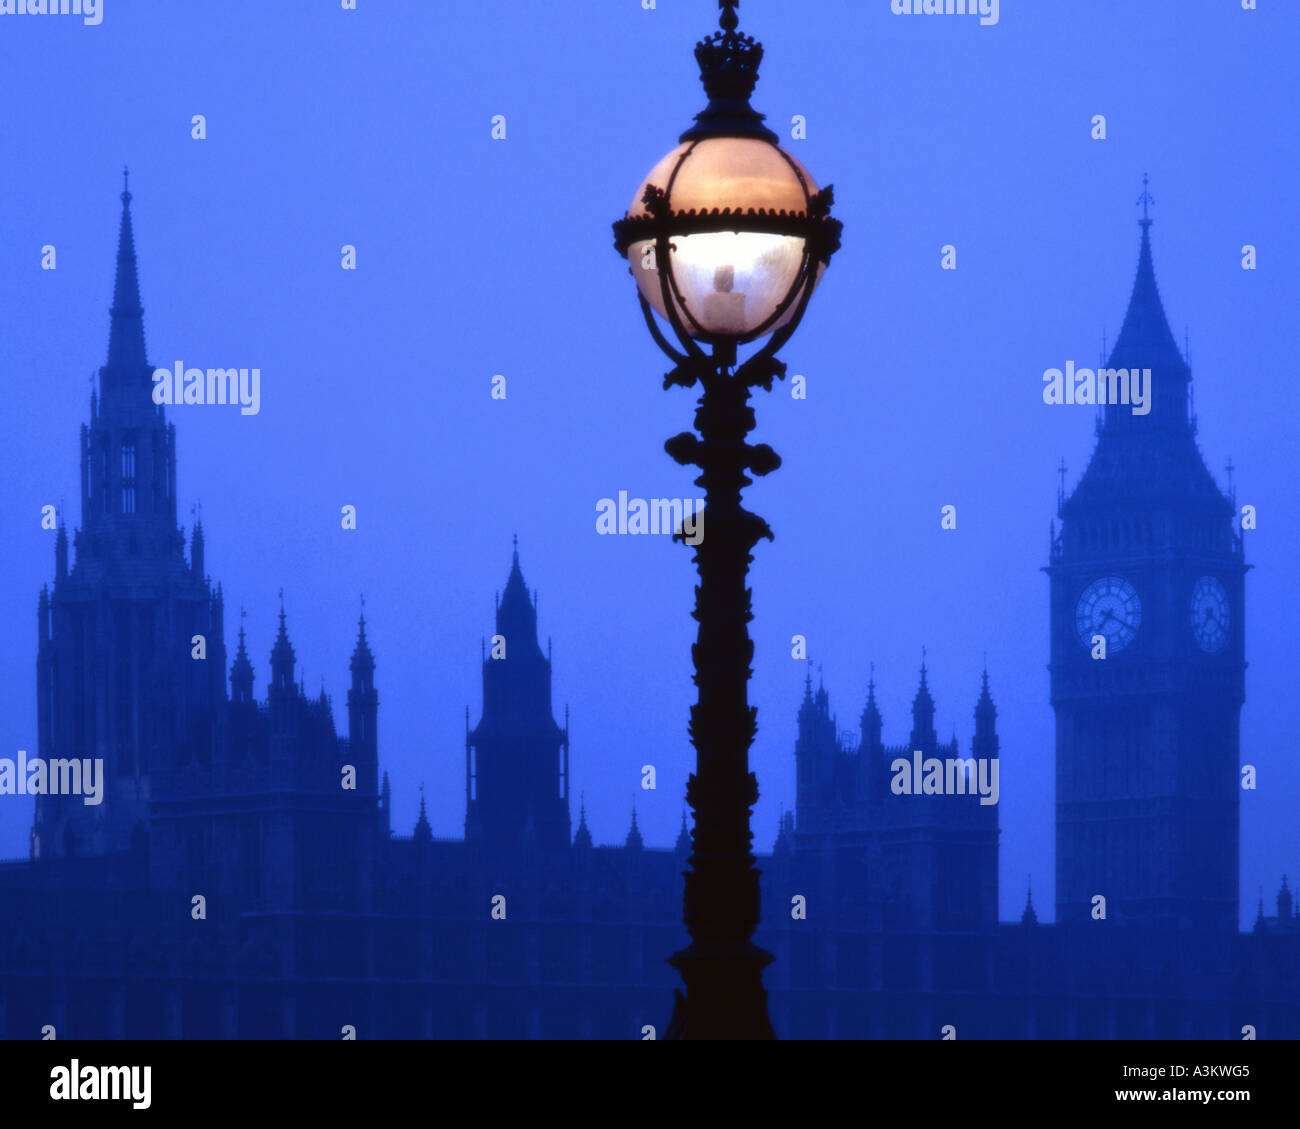 GB - LONDON:  Westminster and Big Ben at night - Stock Image